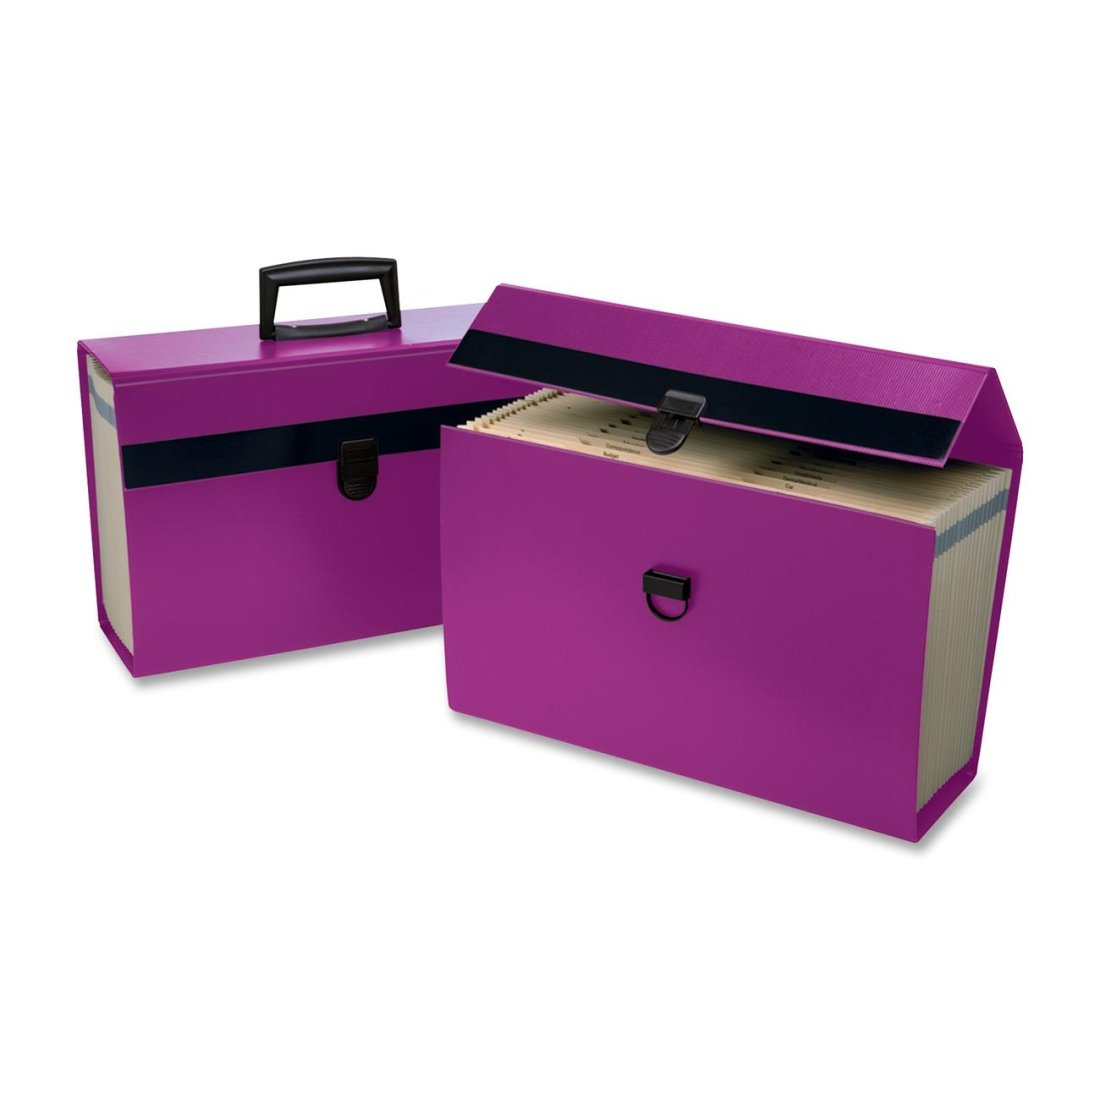 Pendaflex PFX01157 Portafile 01157 Expanding Organizer-Legal, Letter-8 1/2 x11, 8 1/2 x14 Sheet Size-5 1/2 Expansion-19 Pocket(s)-Paper-Purple-Recycled-1/Each Letter-8 1/2 x11 S.P. Richards CA